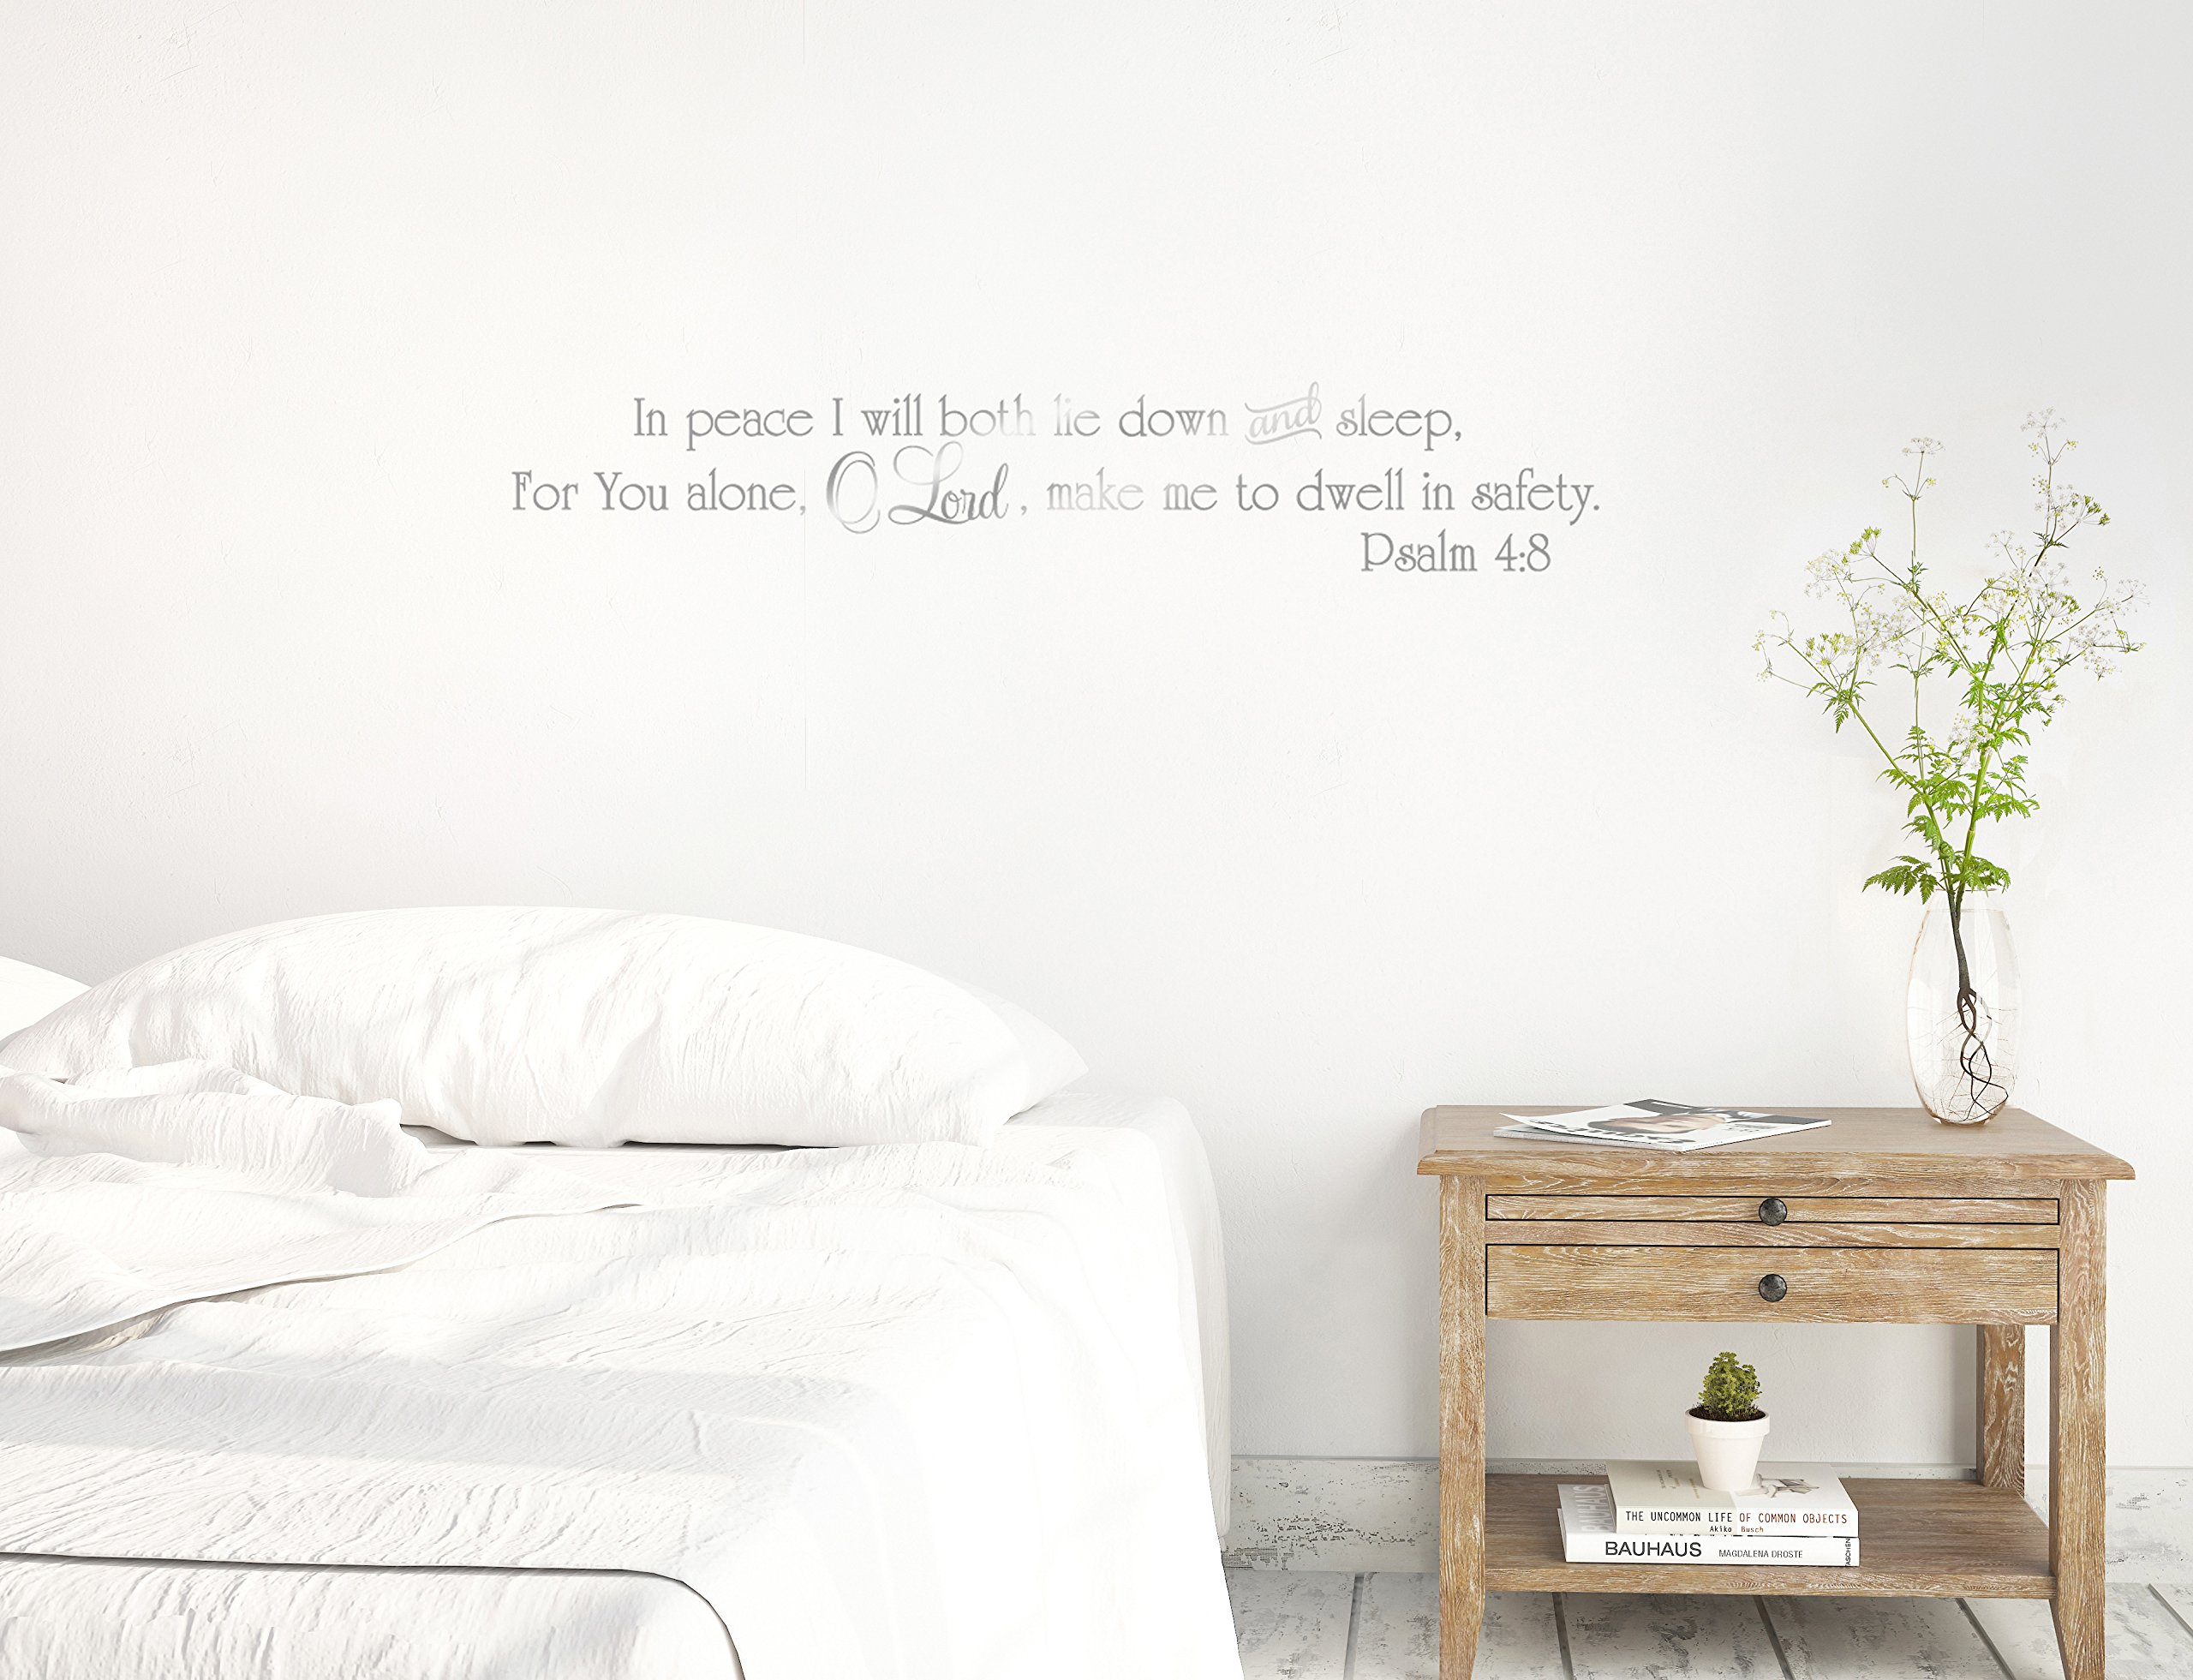 48''x8'' In Peace I Will Both Lie Down And Sleep For You Alone O Lord Make Me To Dwell In Safety Psalm 4:8 Christian Scripture Bible Verse Wall Decal Sticker Art Mural Home Decor Quote